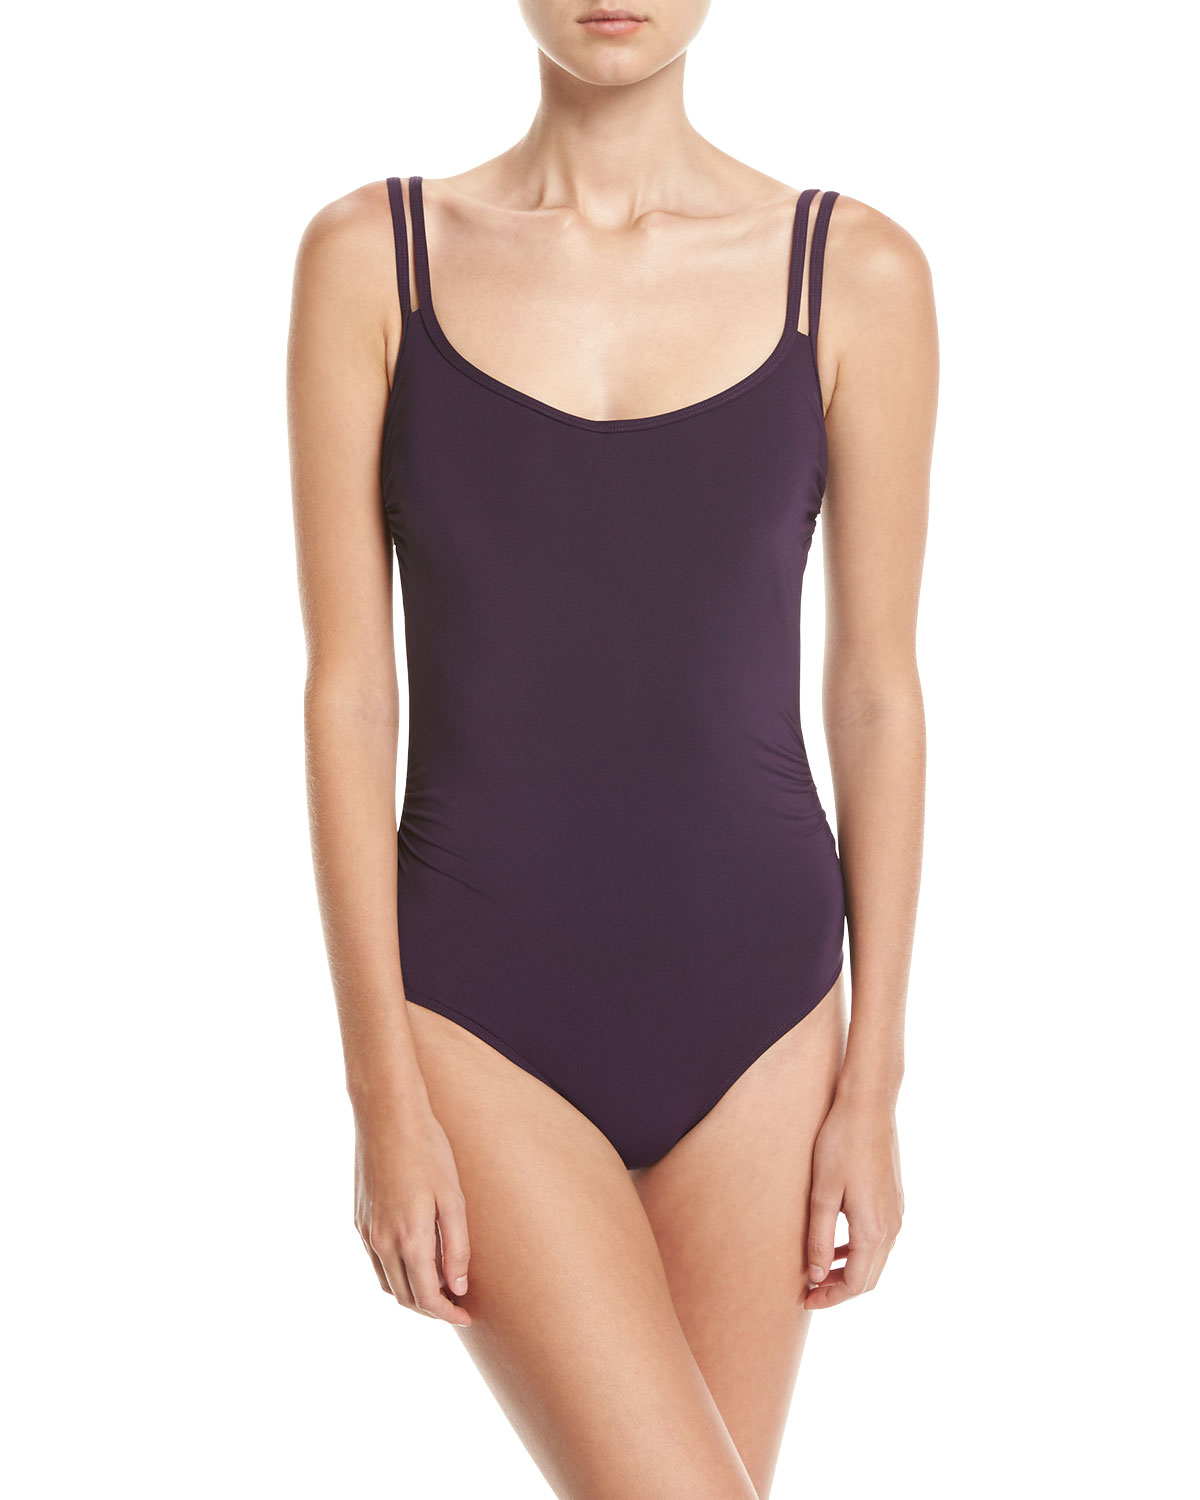 Jet Set One-Piece Swimsuit Purple (Available in DD-E Cups)